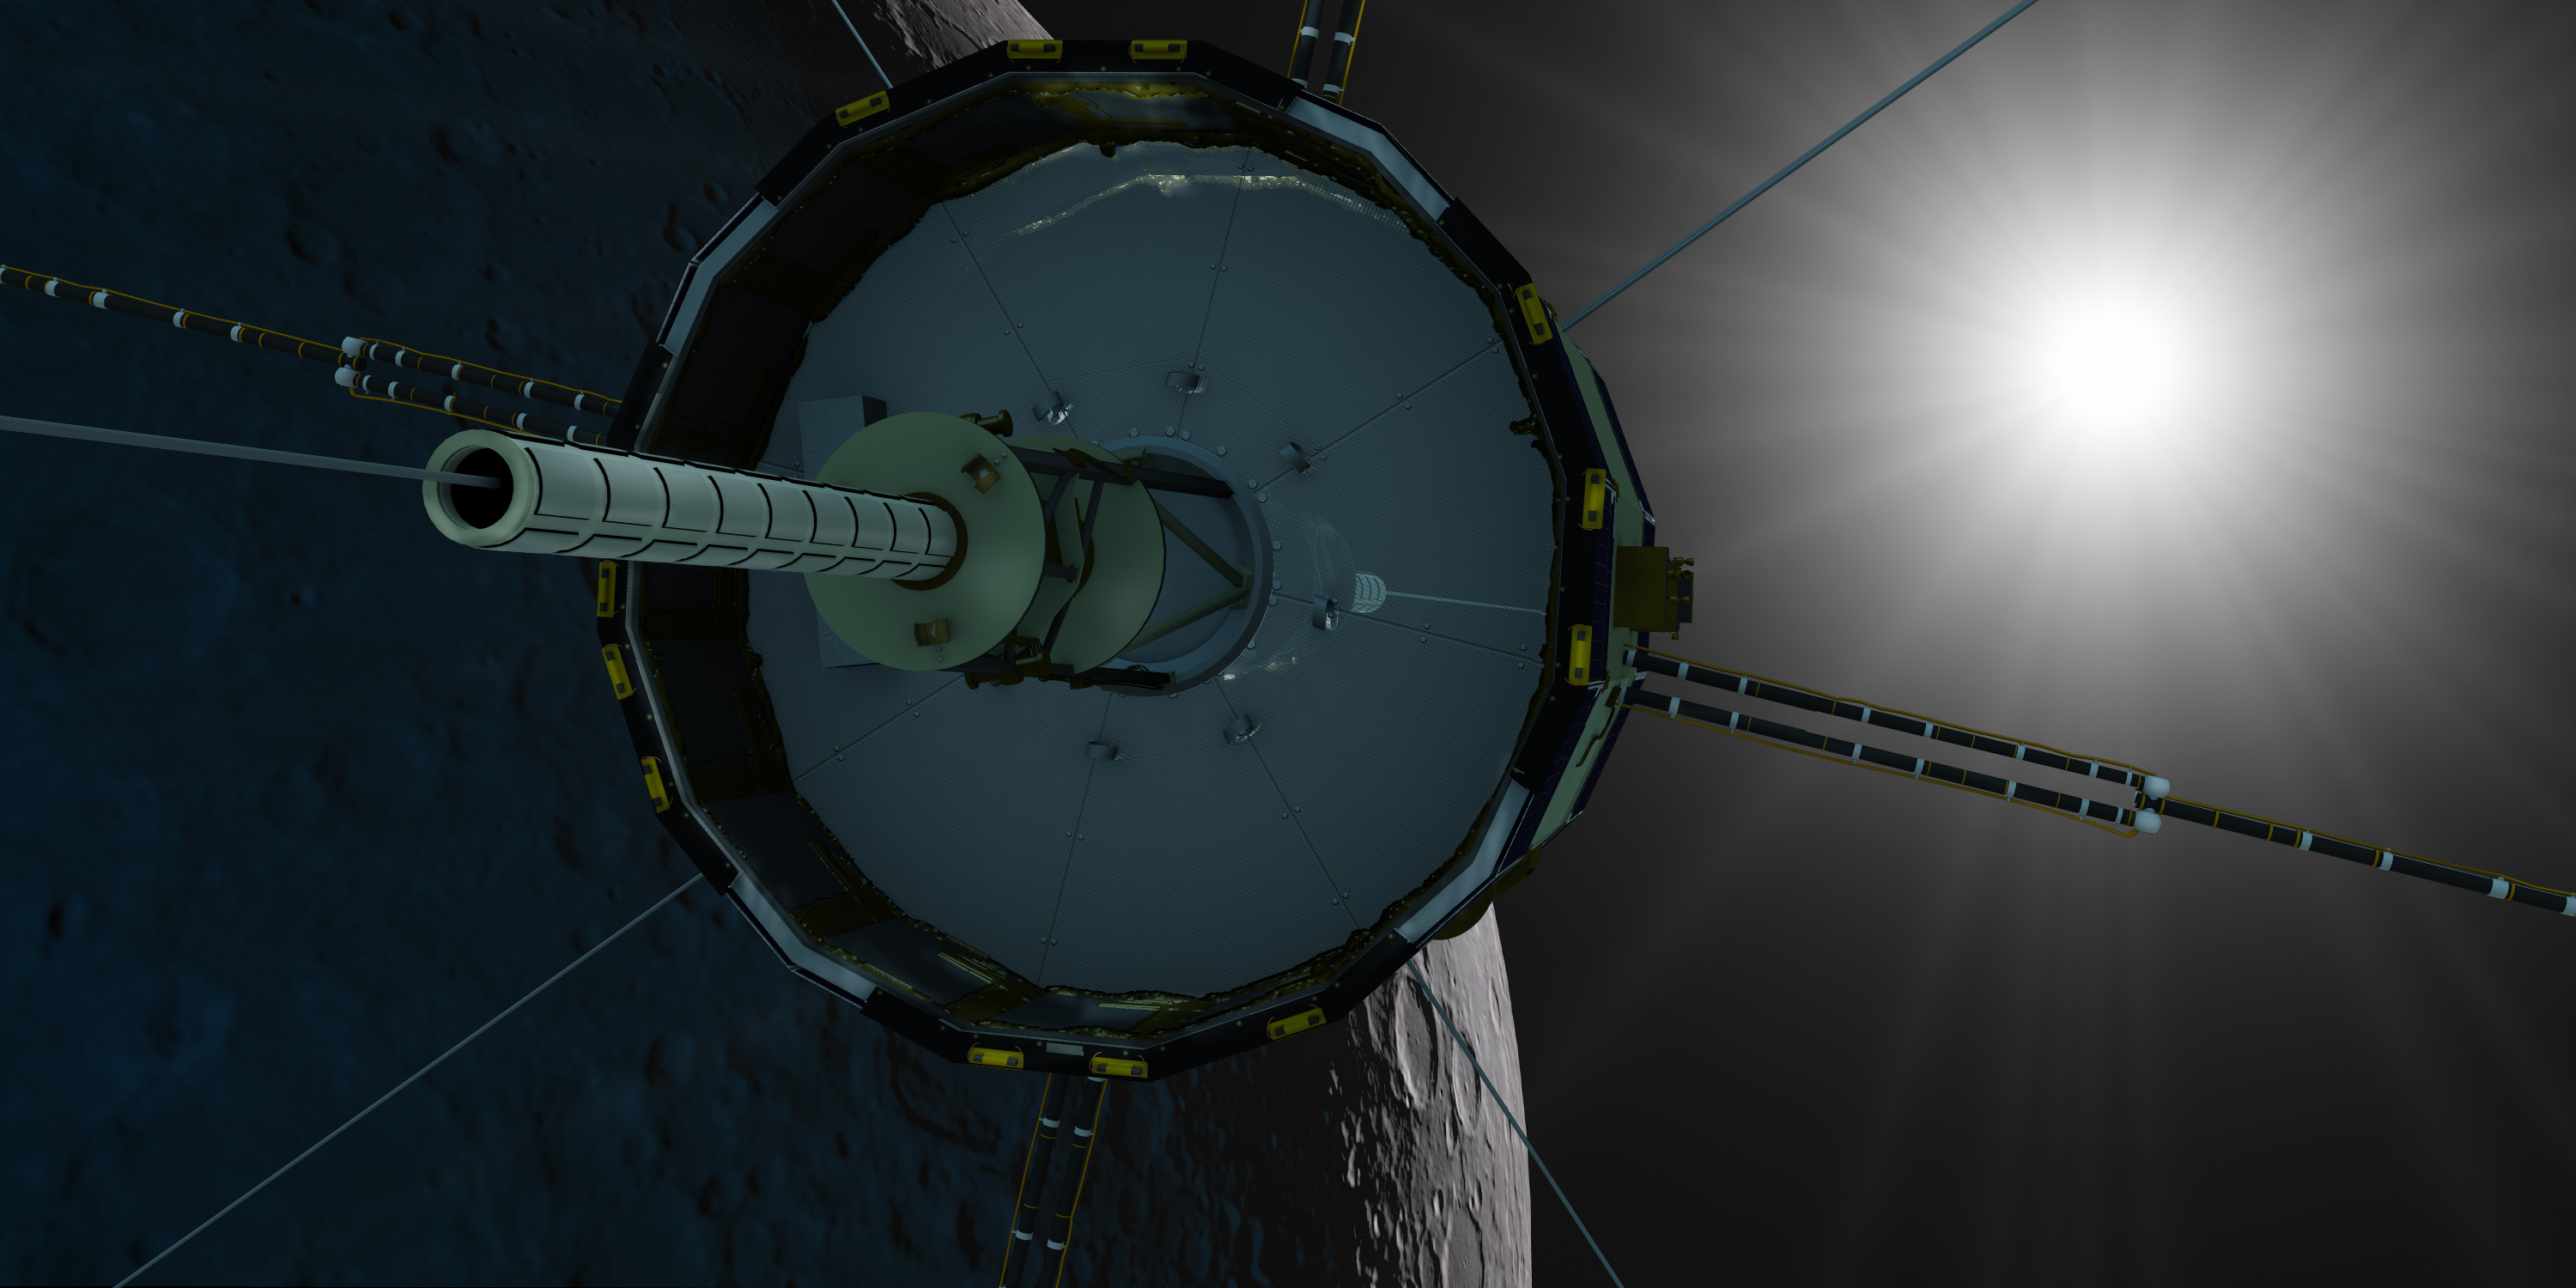 Private Team Reaches Crowdfunding Goal To Reboot 36-Year-Old NASA Probe